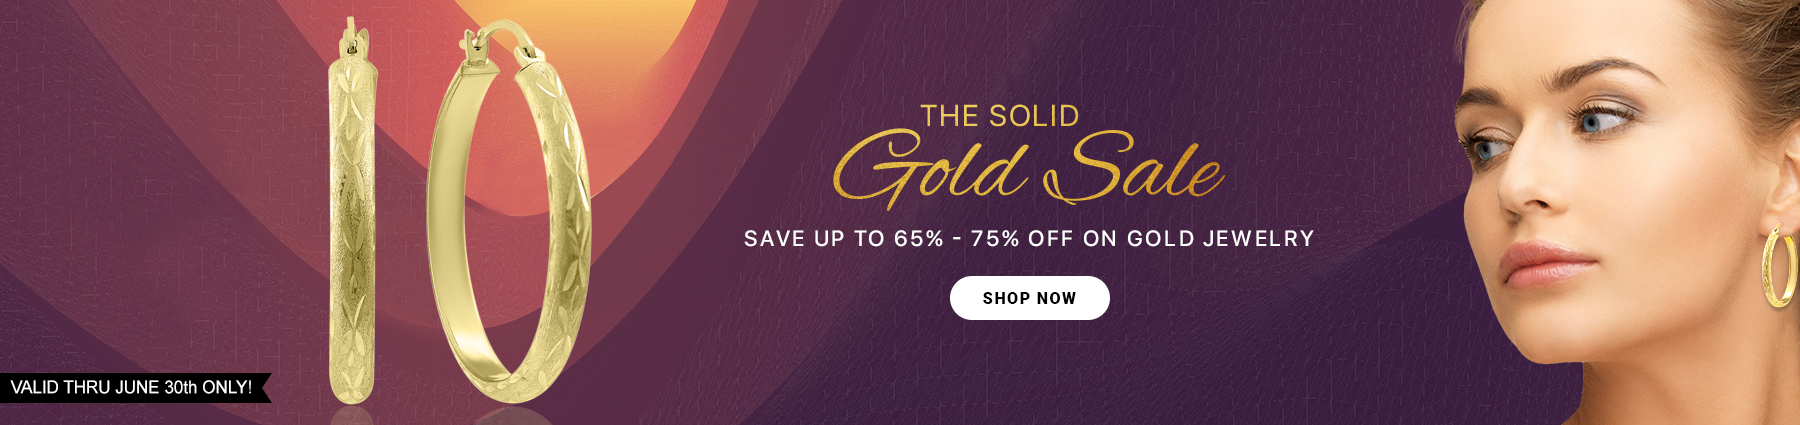 Solid Gold Sale